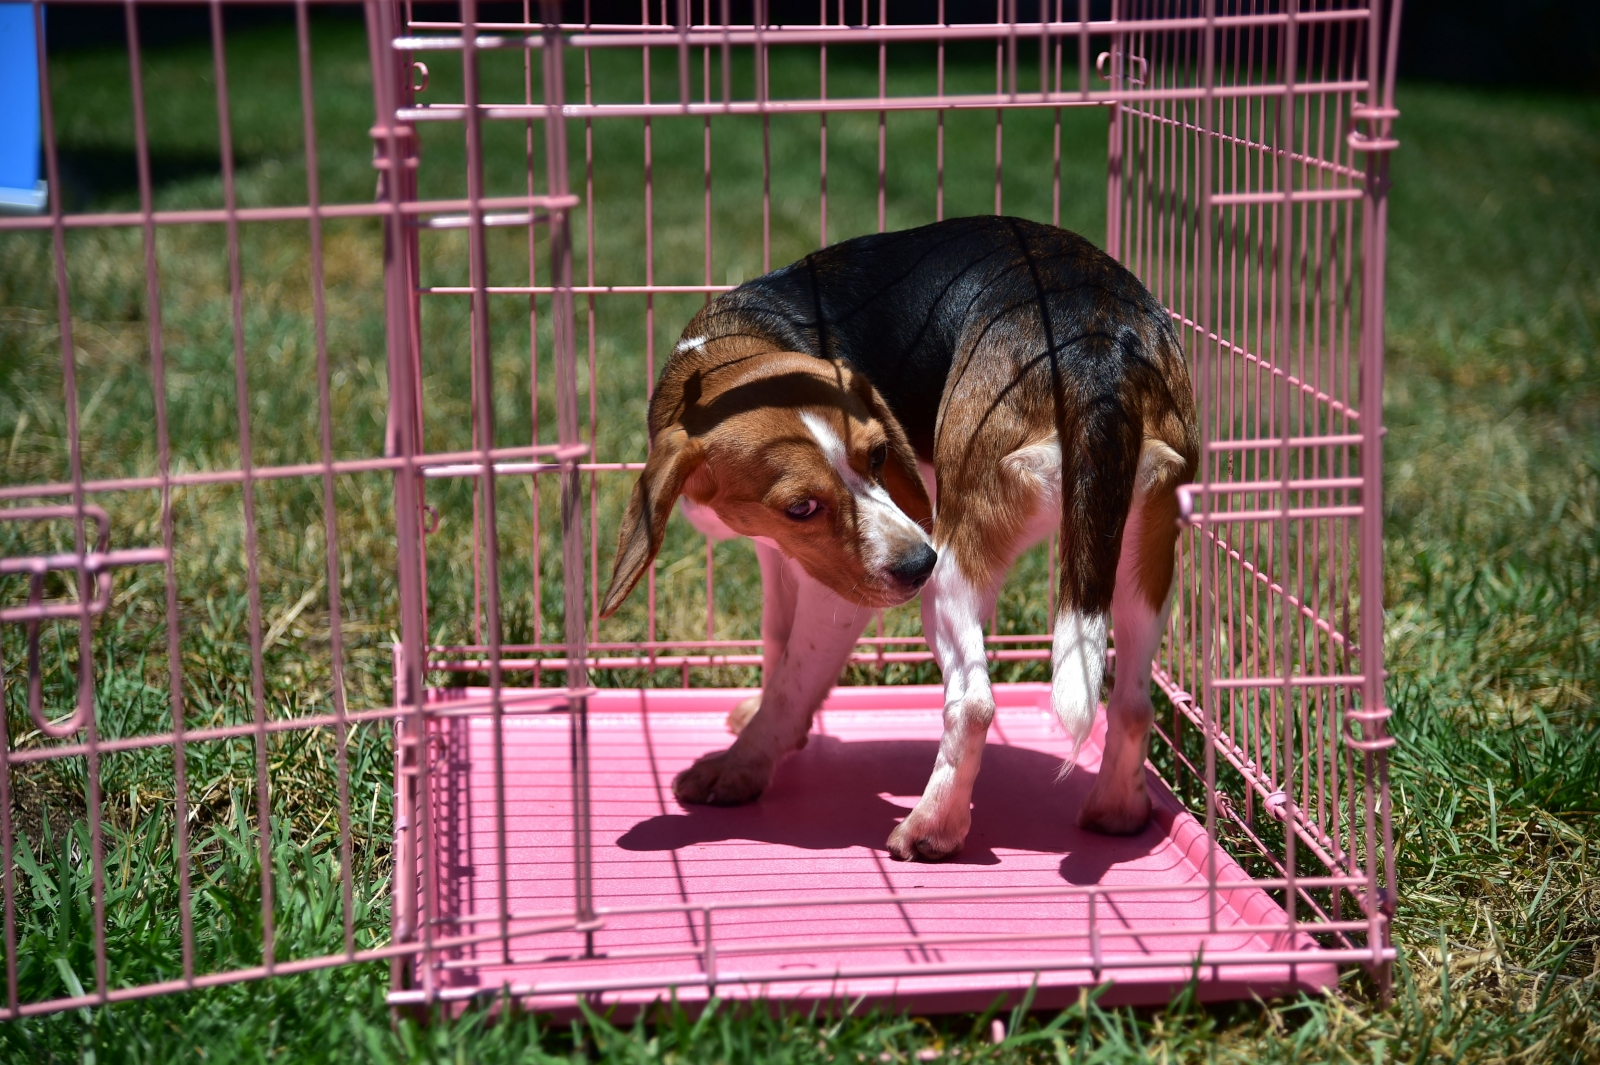 US government quietly took down thousands of animal-welfare data offline